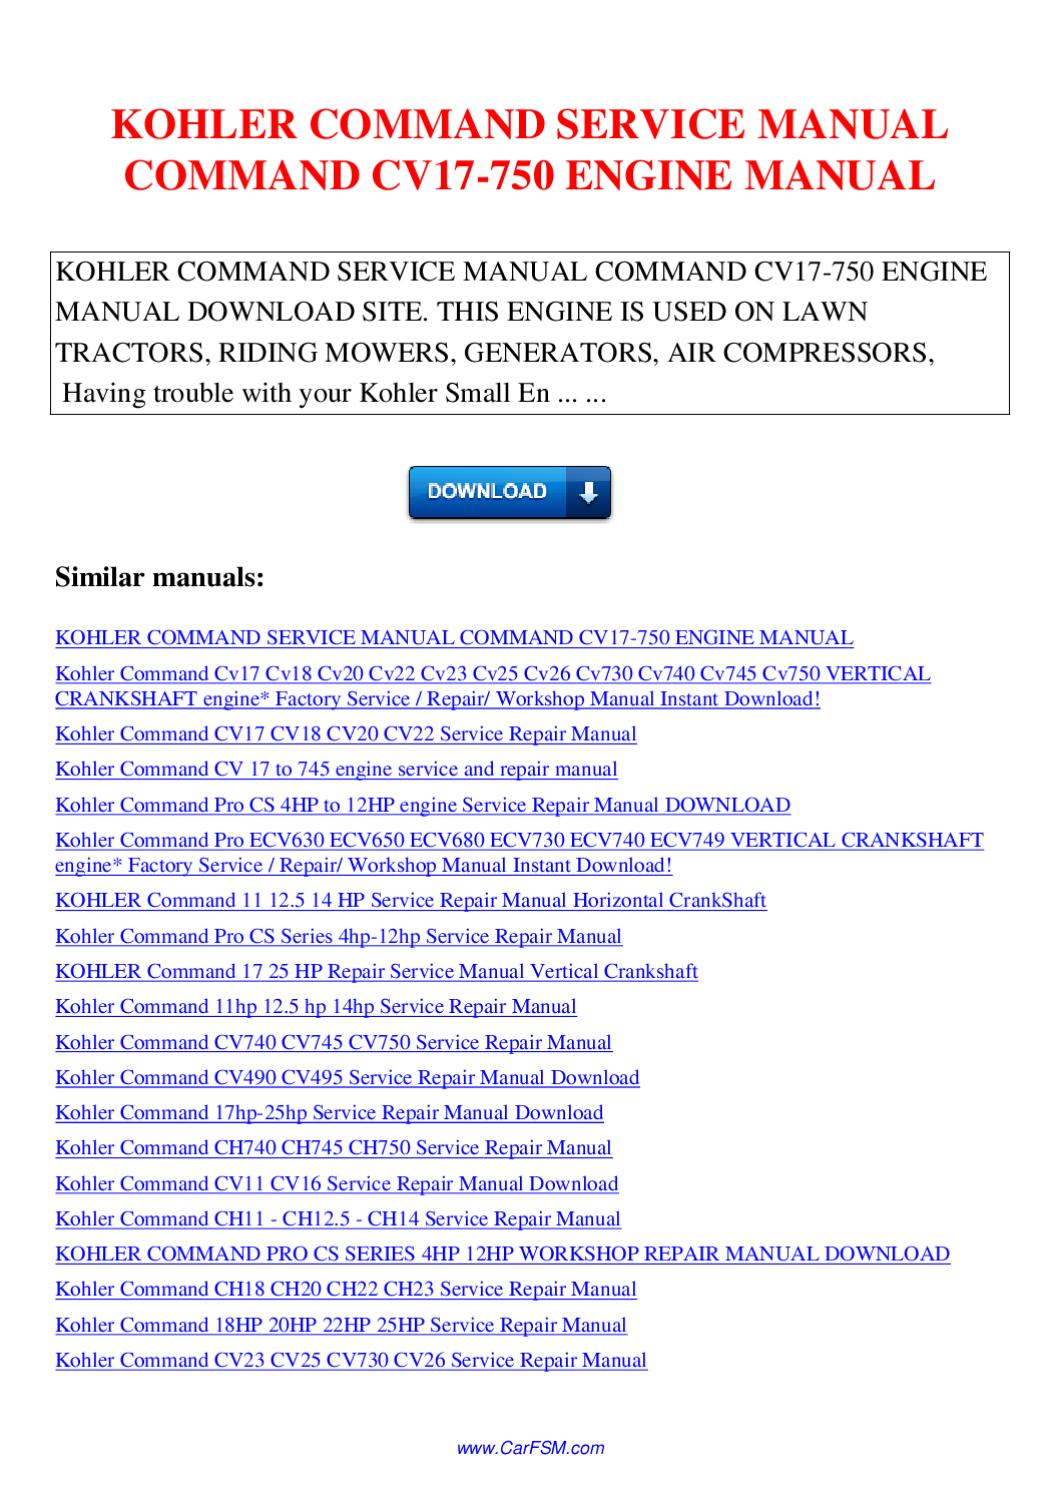 KOHLER COMMAND SERVICE MANUAL COMMAND CV17 750 ENGINE MANUAL by Nana Hong -  issuu